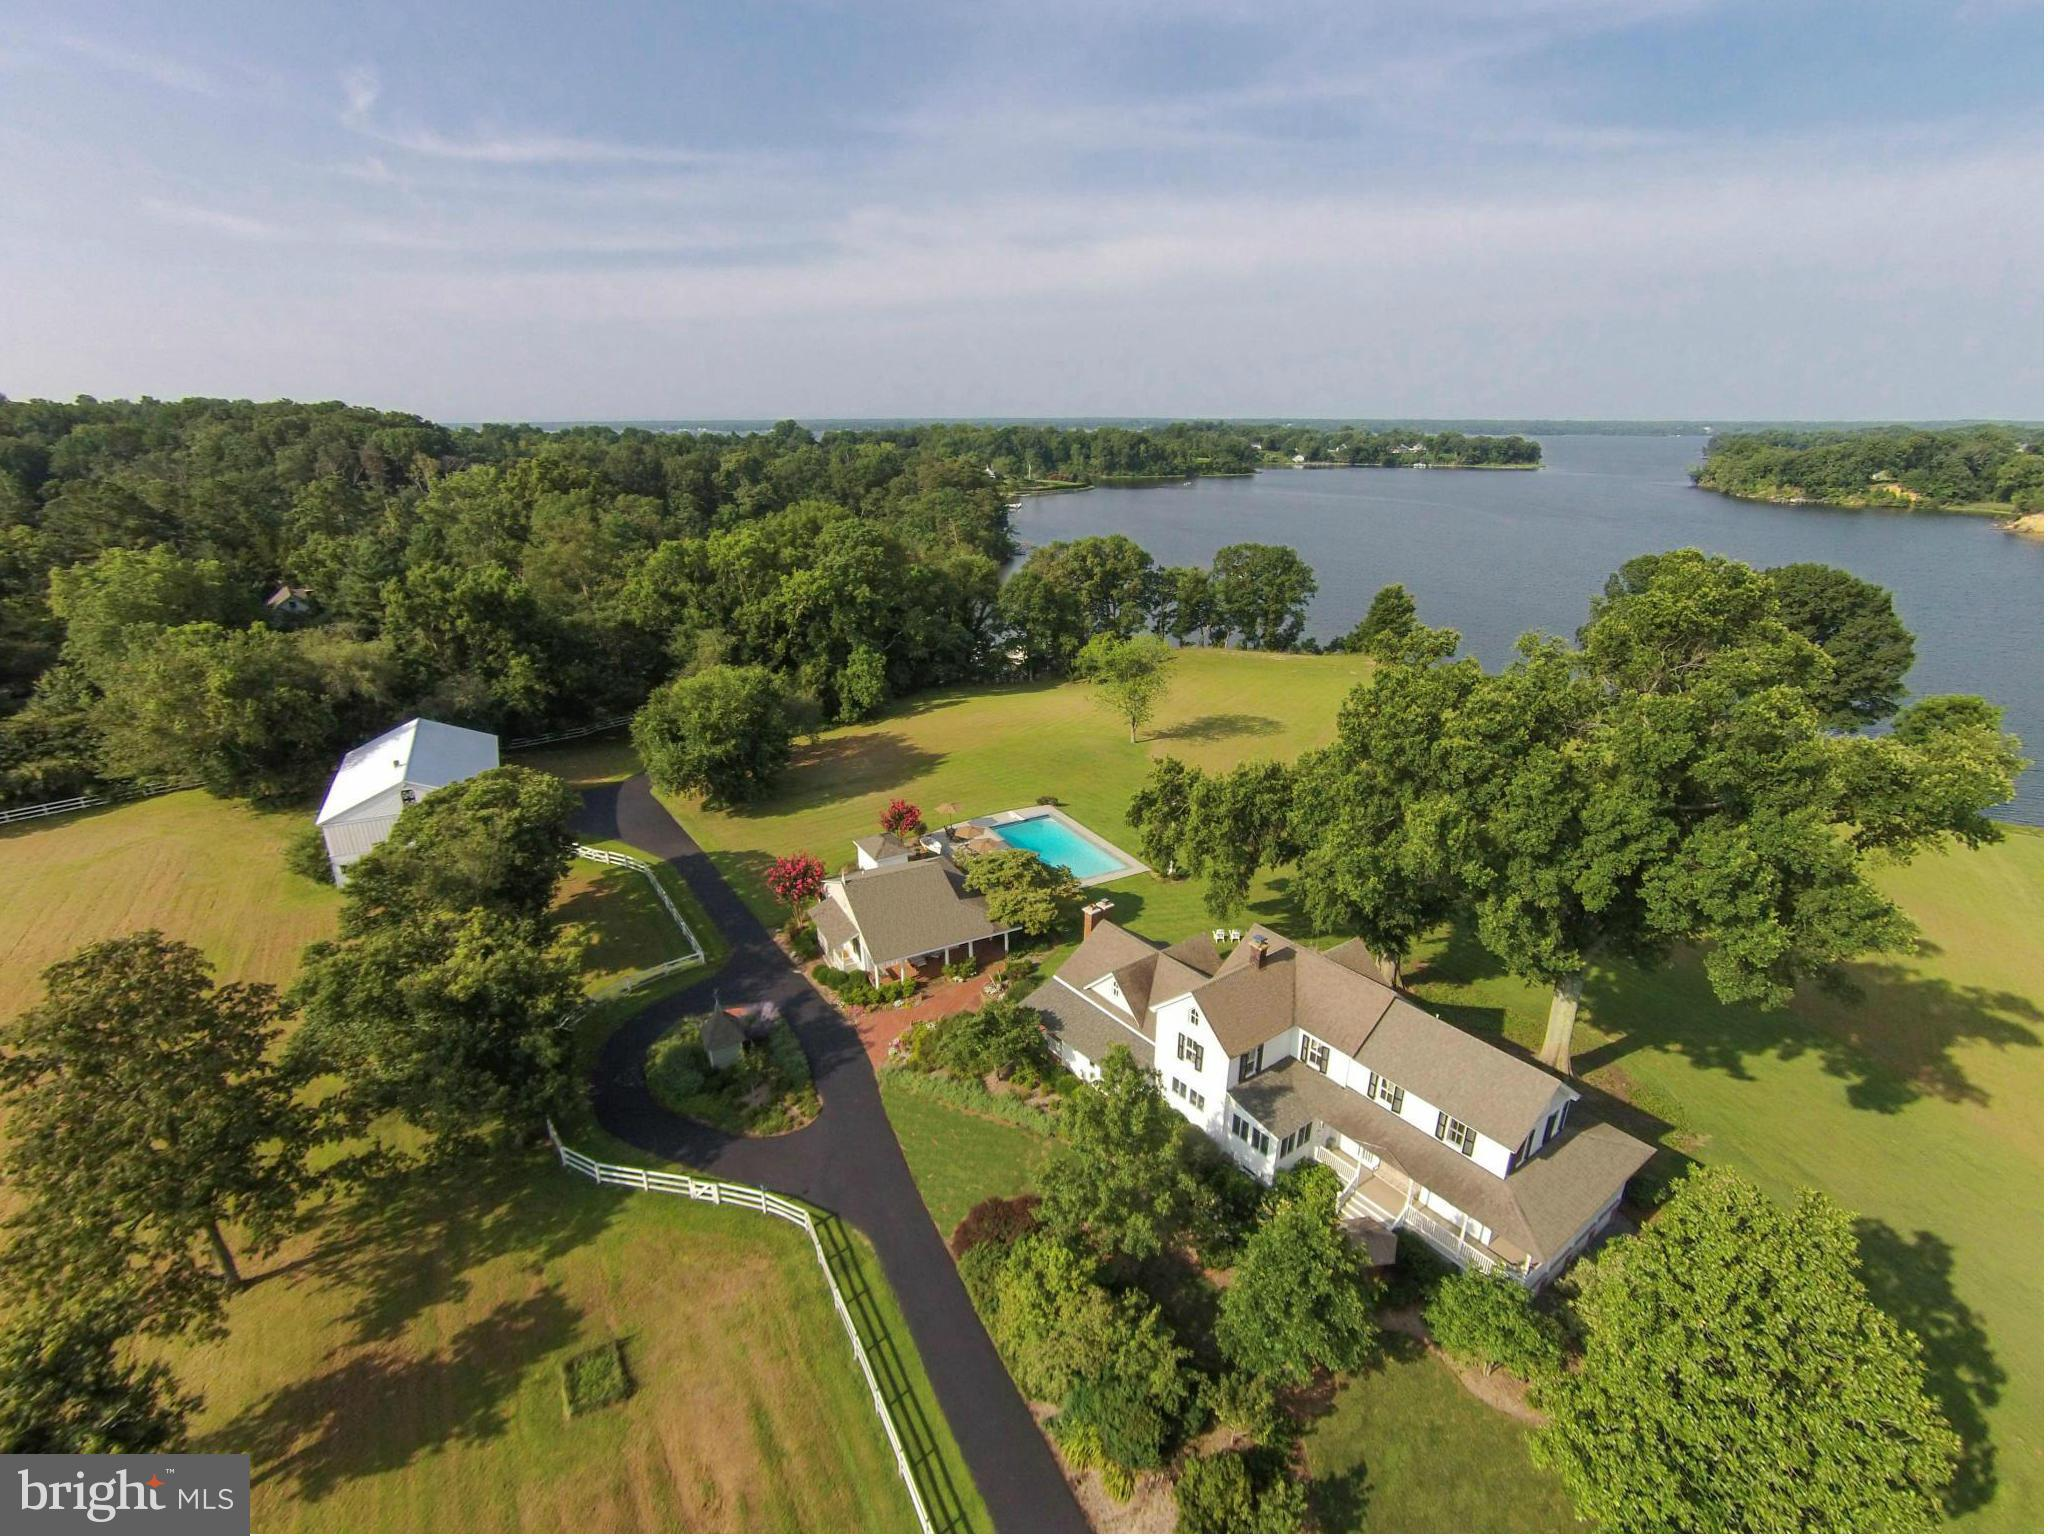 10015 BREEDEN ROAD, LUSBY, MD 20657